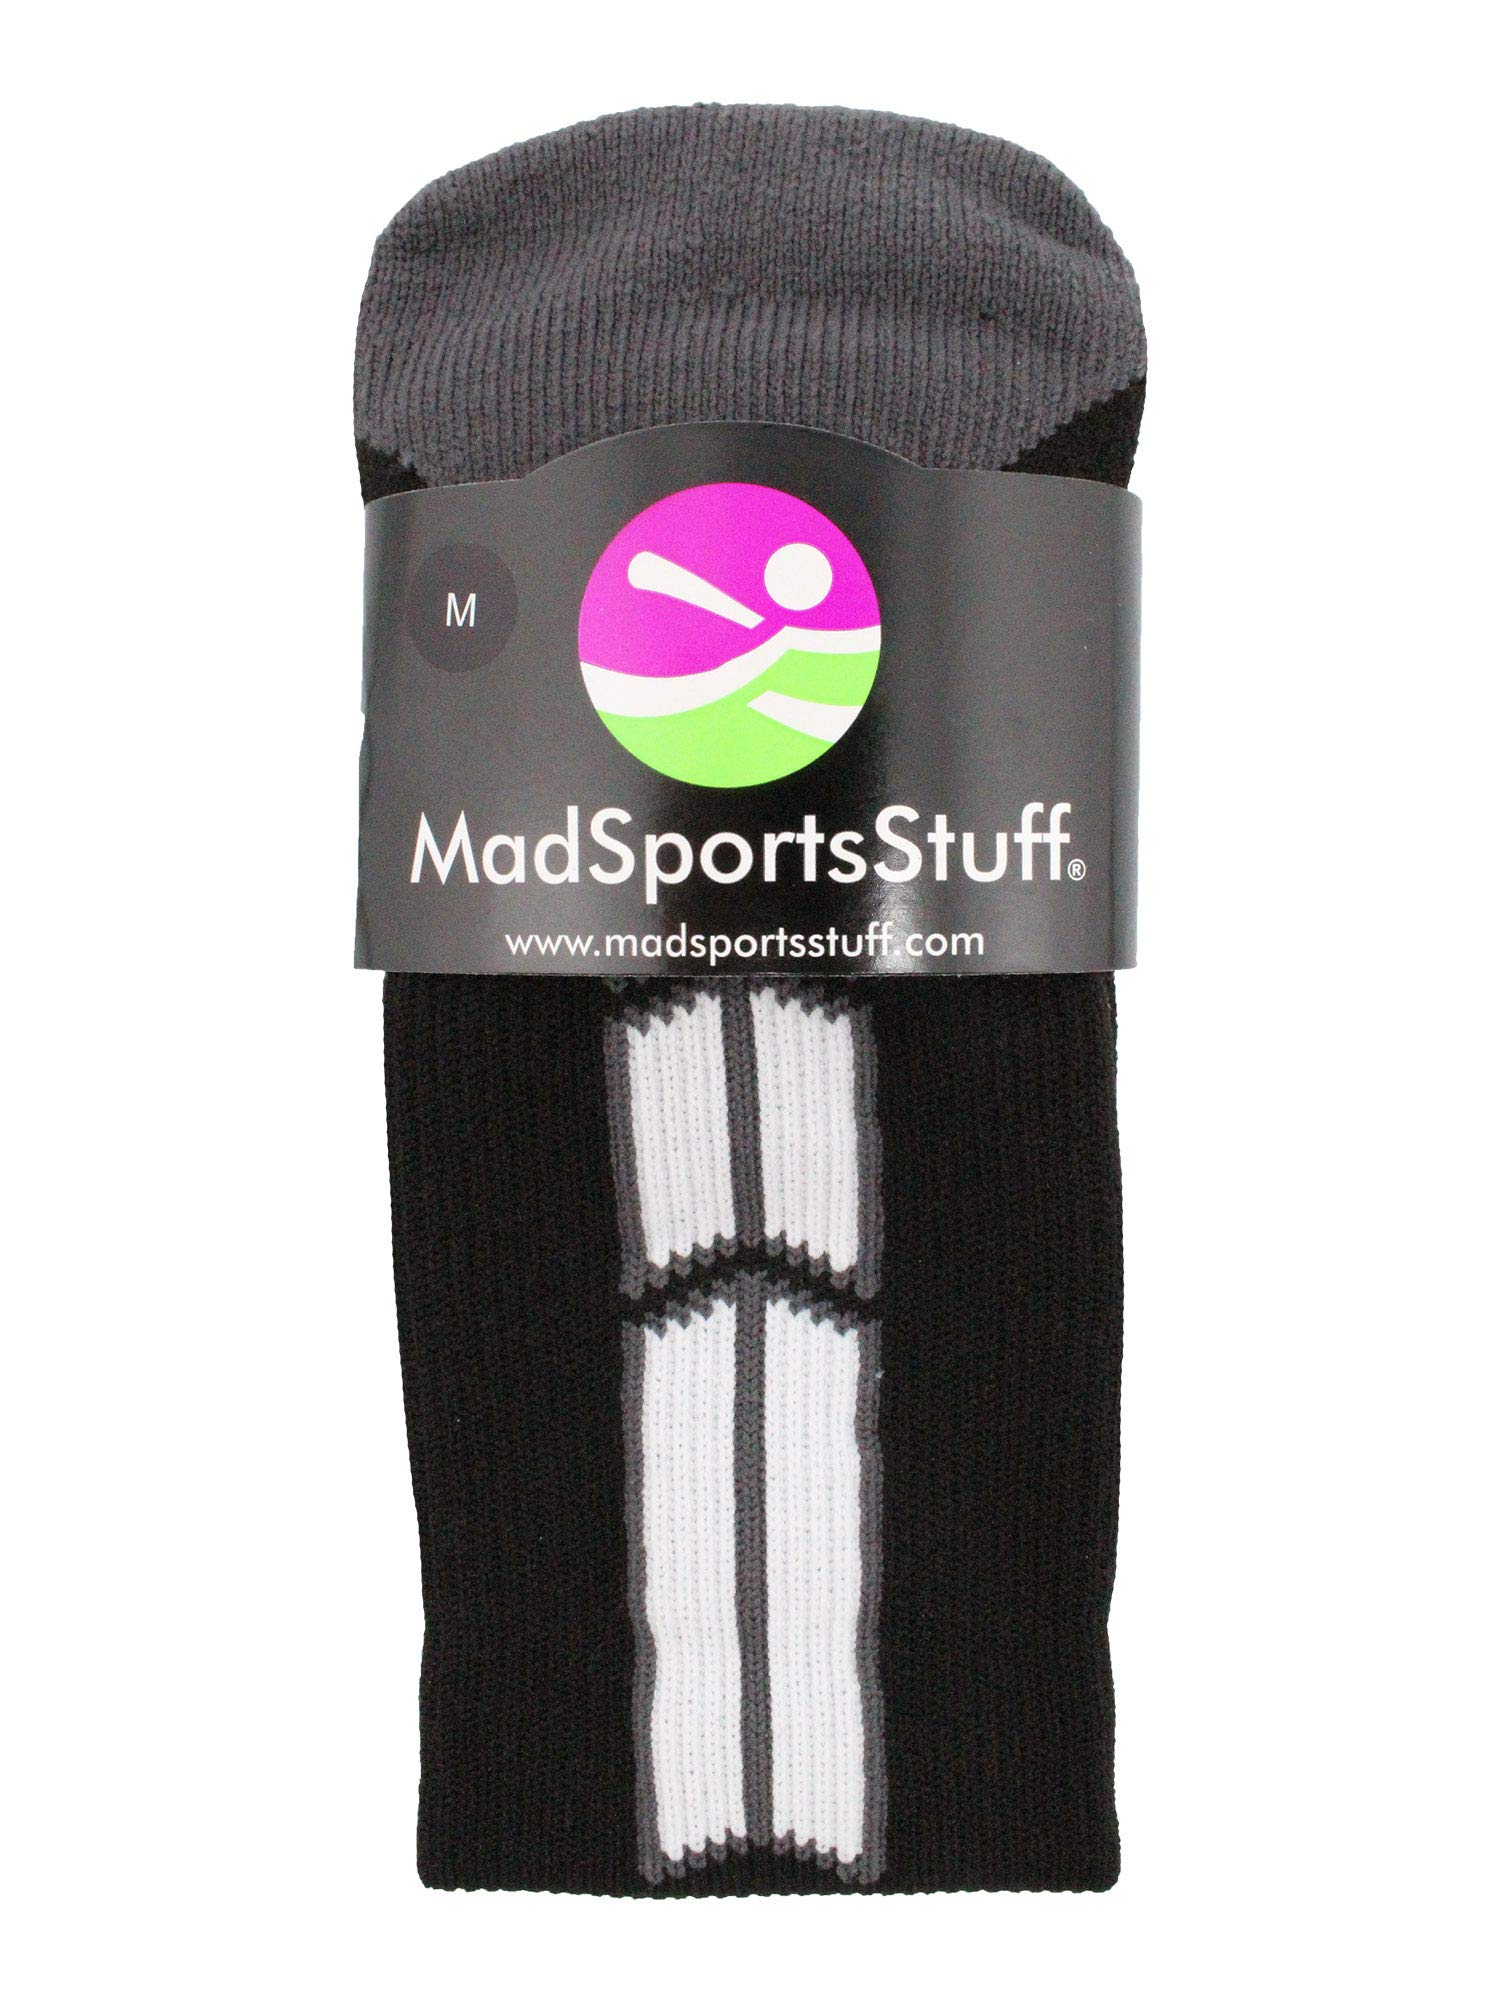 MadSportsStuff Player Id Black/White Over The Calf Number Socks (#07, Small) by MadSportsStuff (Image #3)